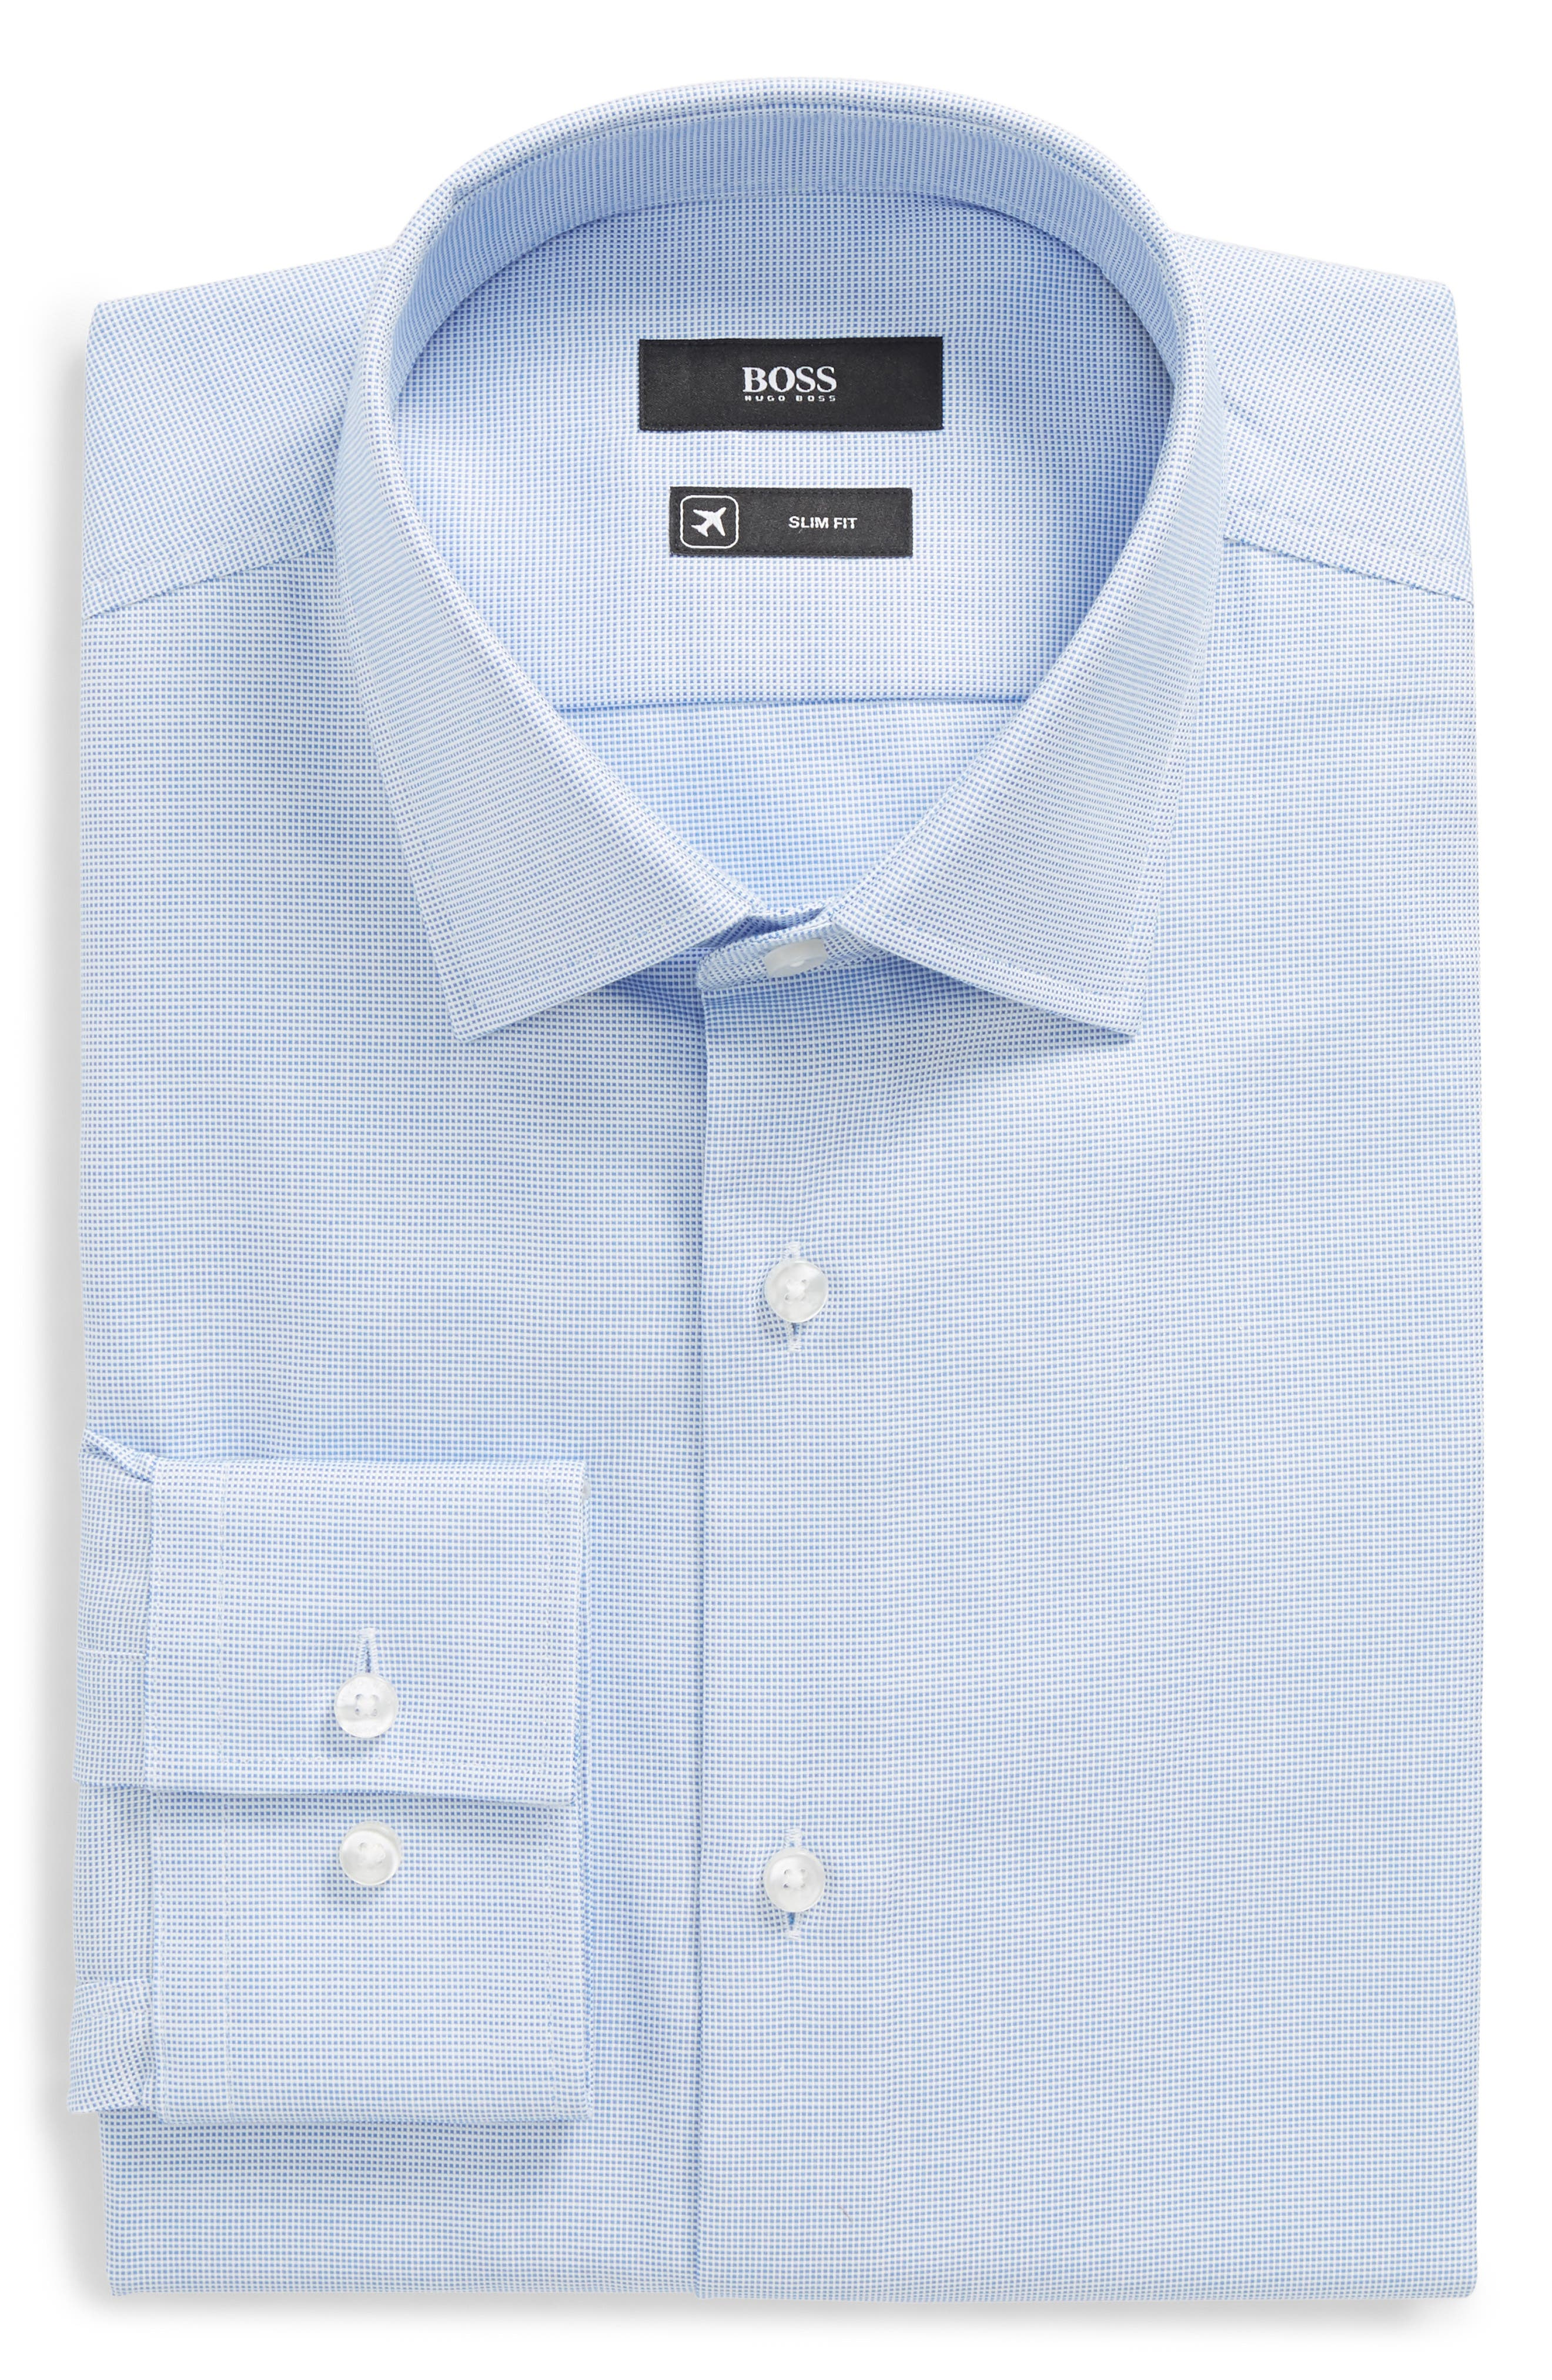 Jenno Slim Fit Solid Dress Shirt,                         Main,                         color, 433